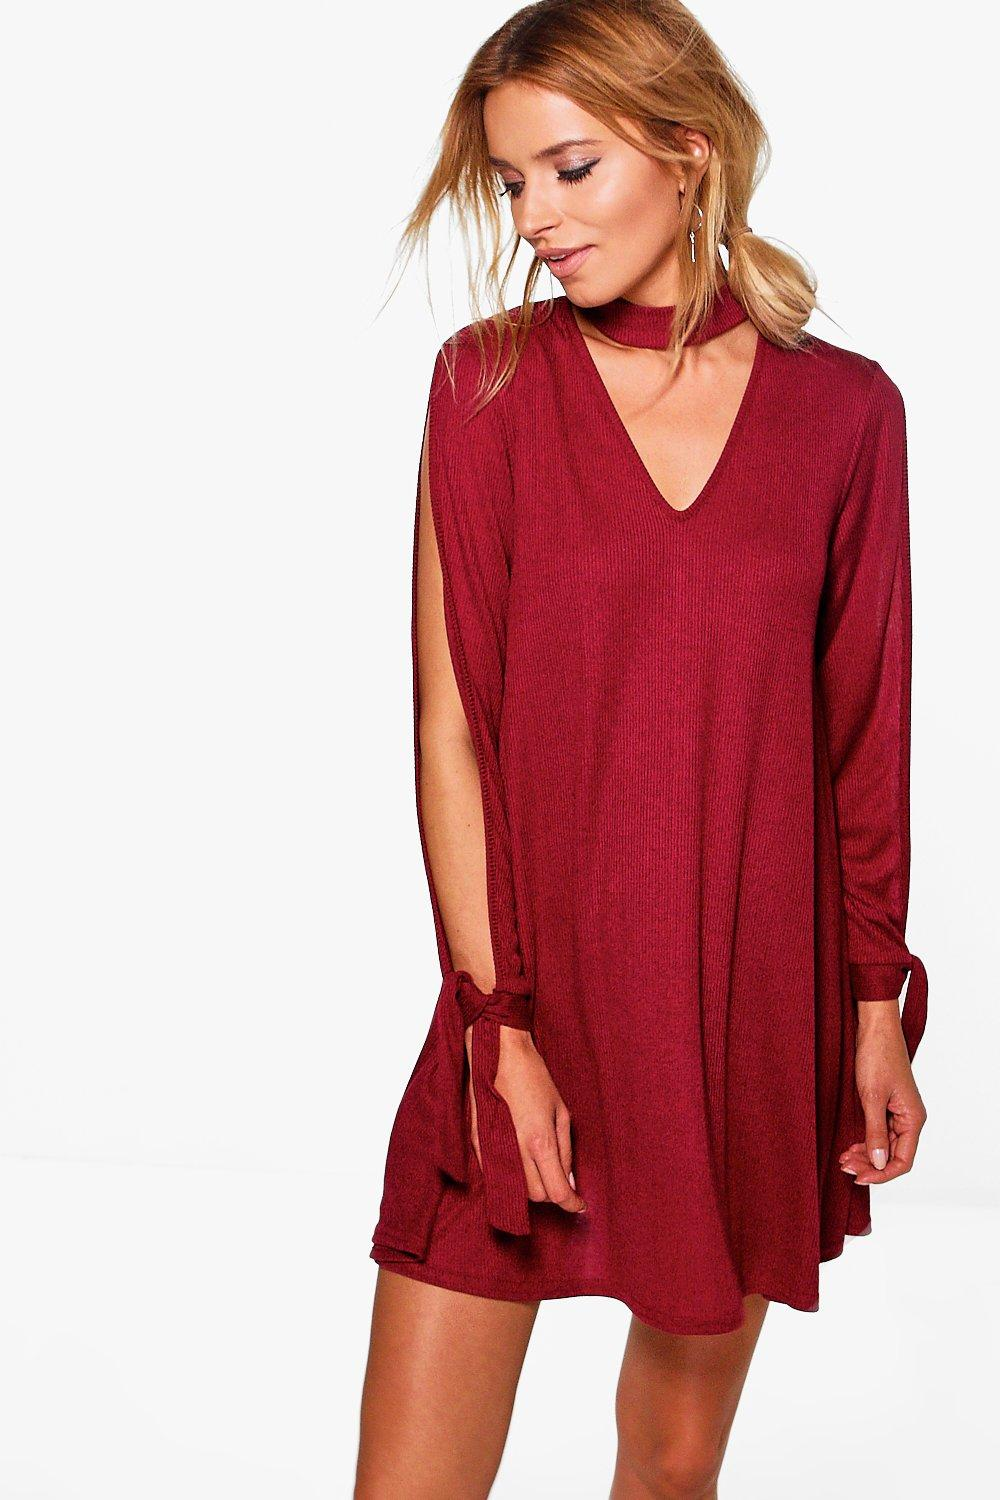 Leila Choker Sleeve Detail Rib Knit Swing Dress